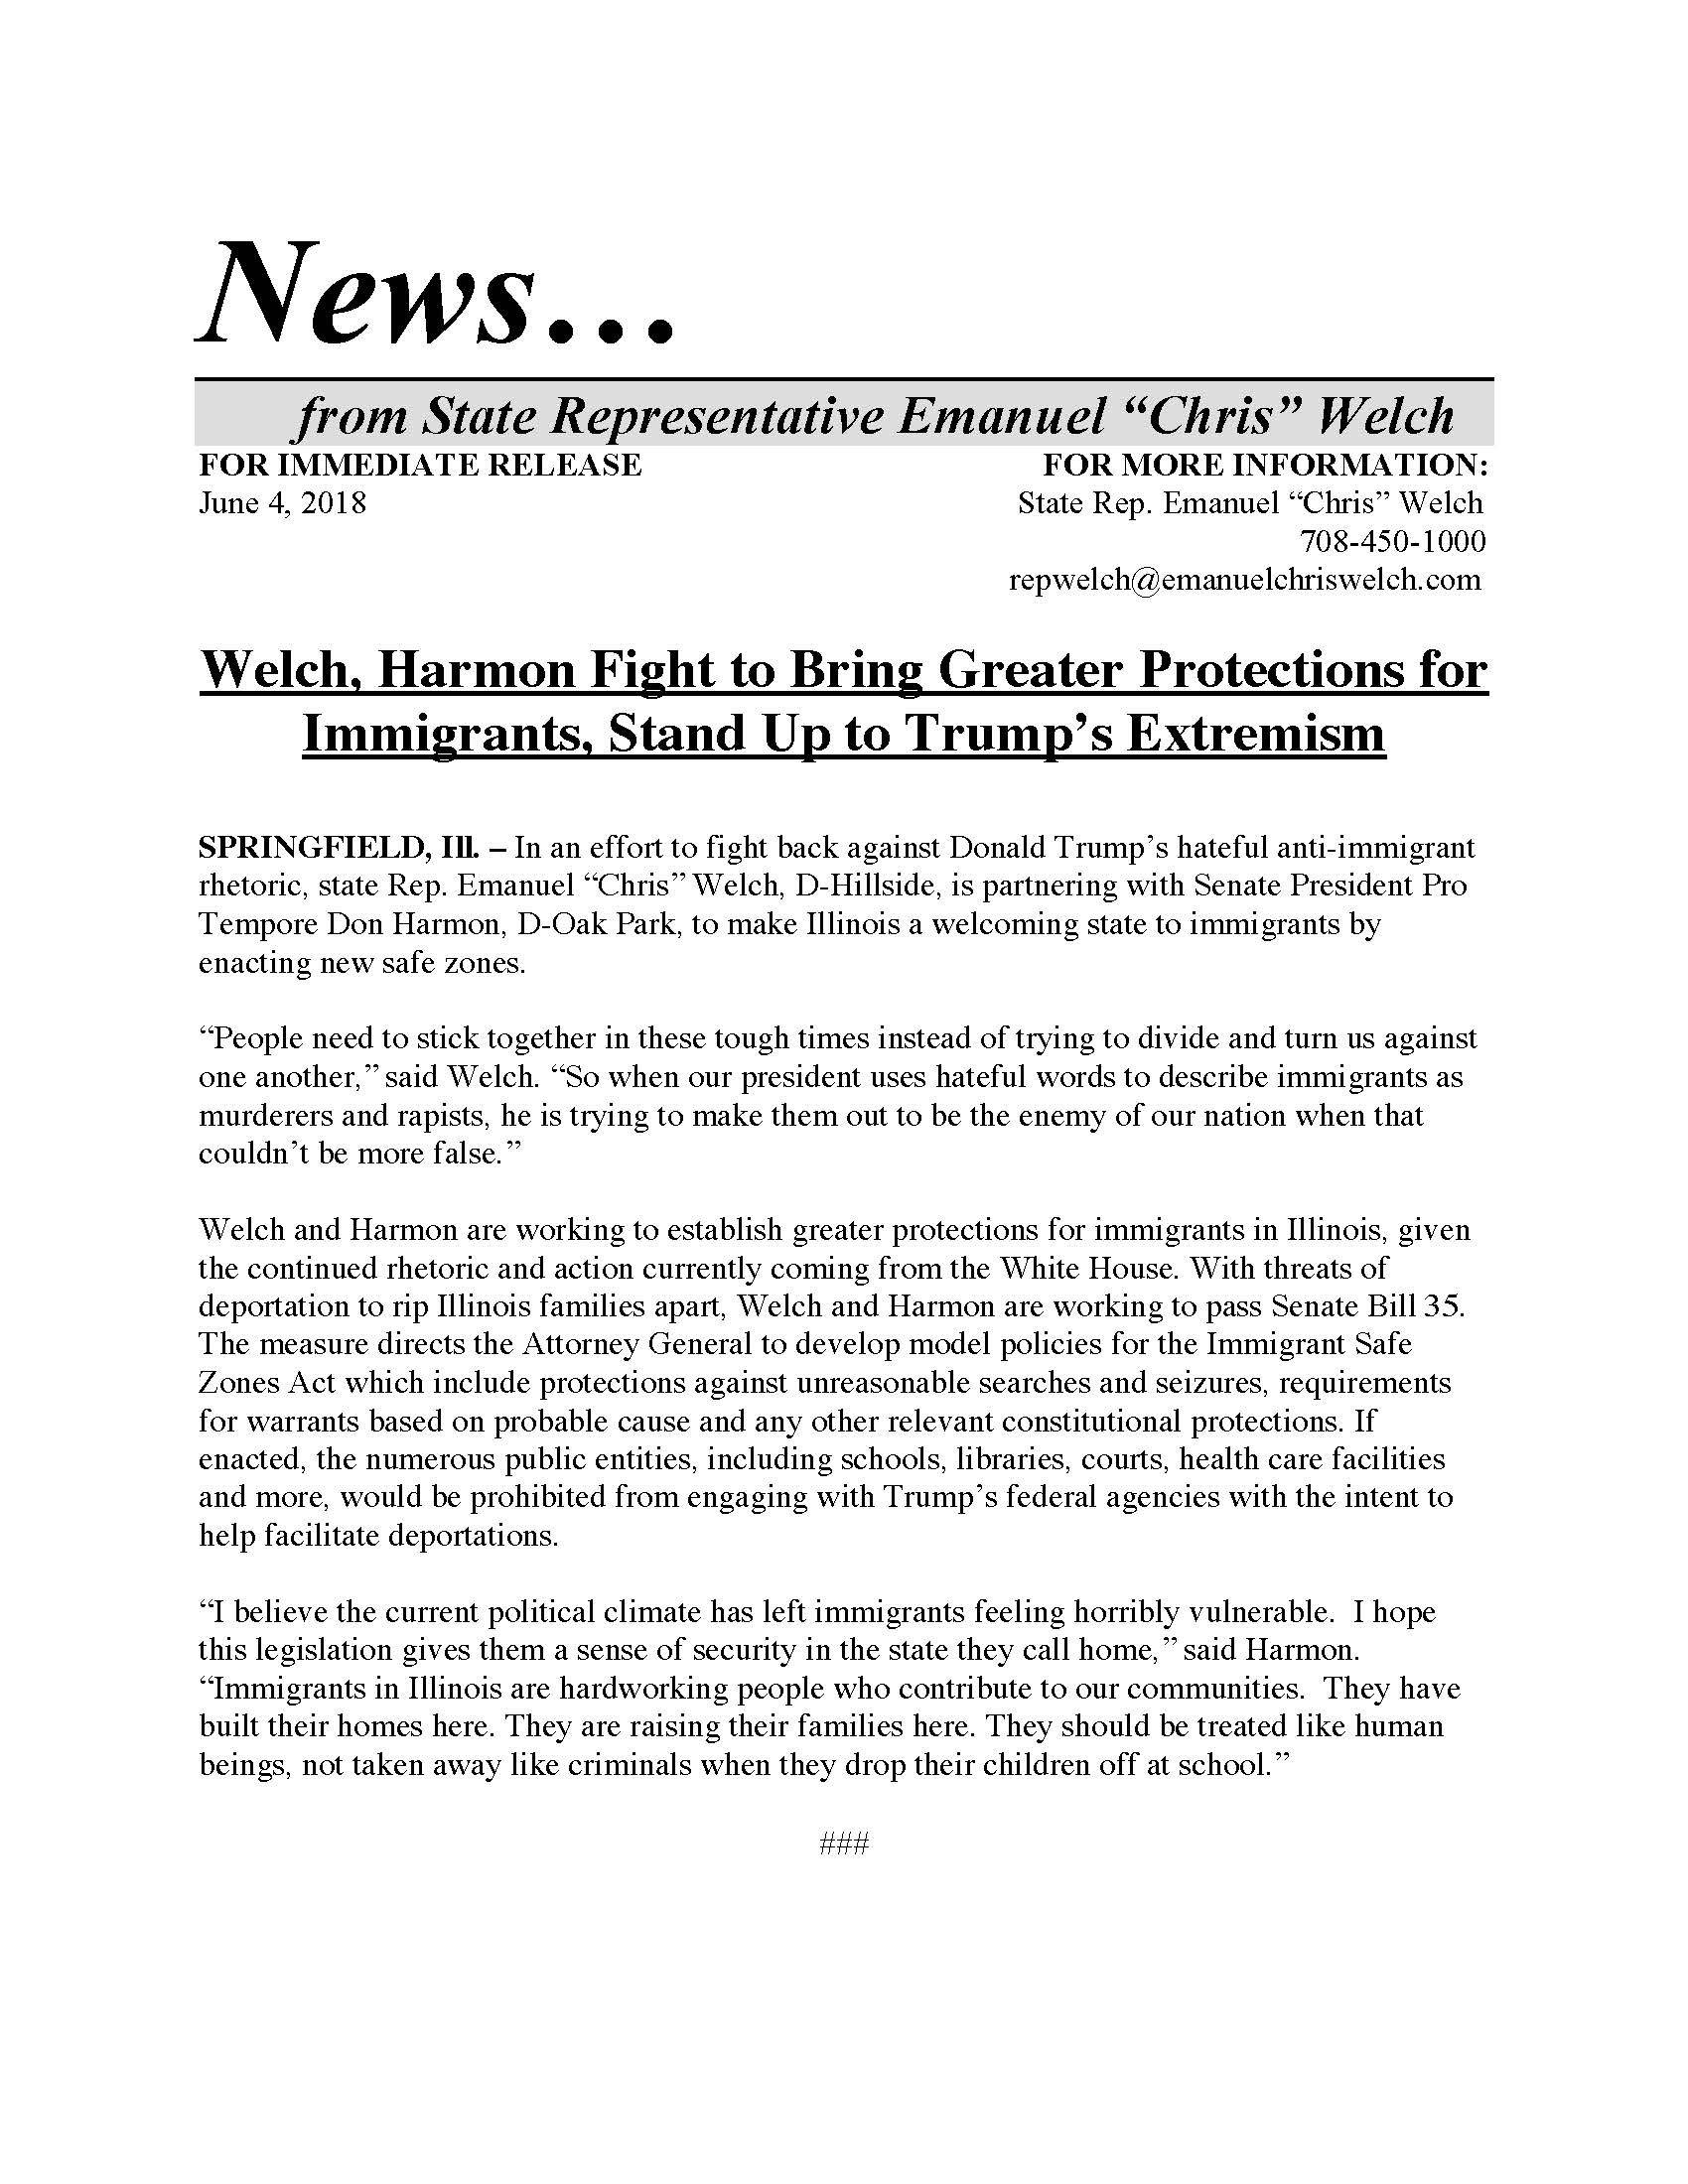 Welch, Harmon Fight to Bring Greater Protections for Immigrants  (June 4, 2018)